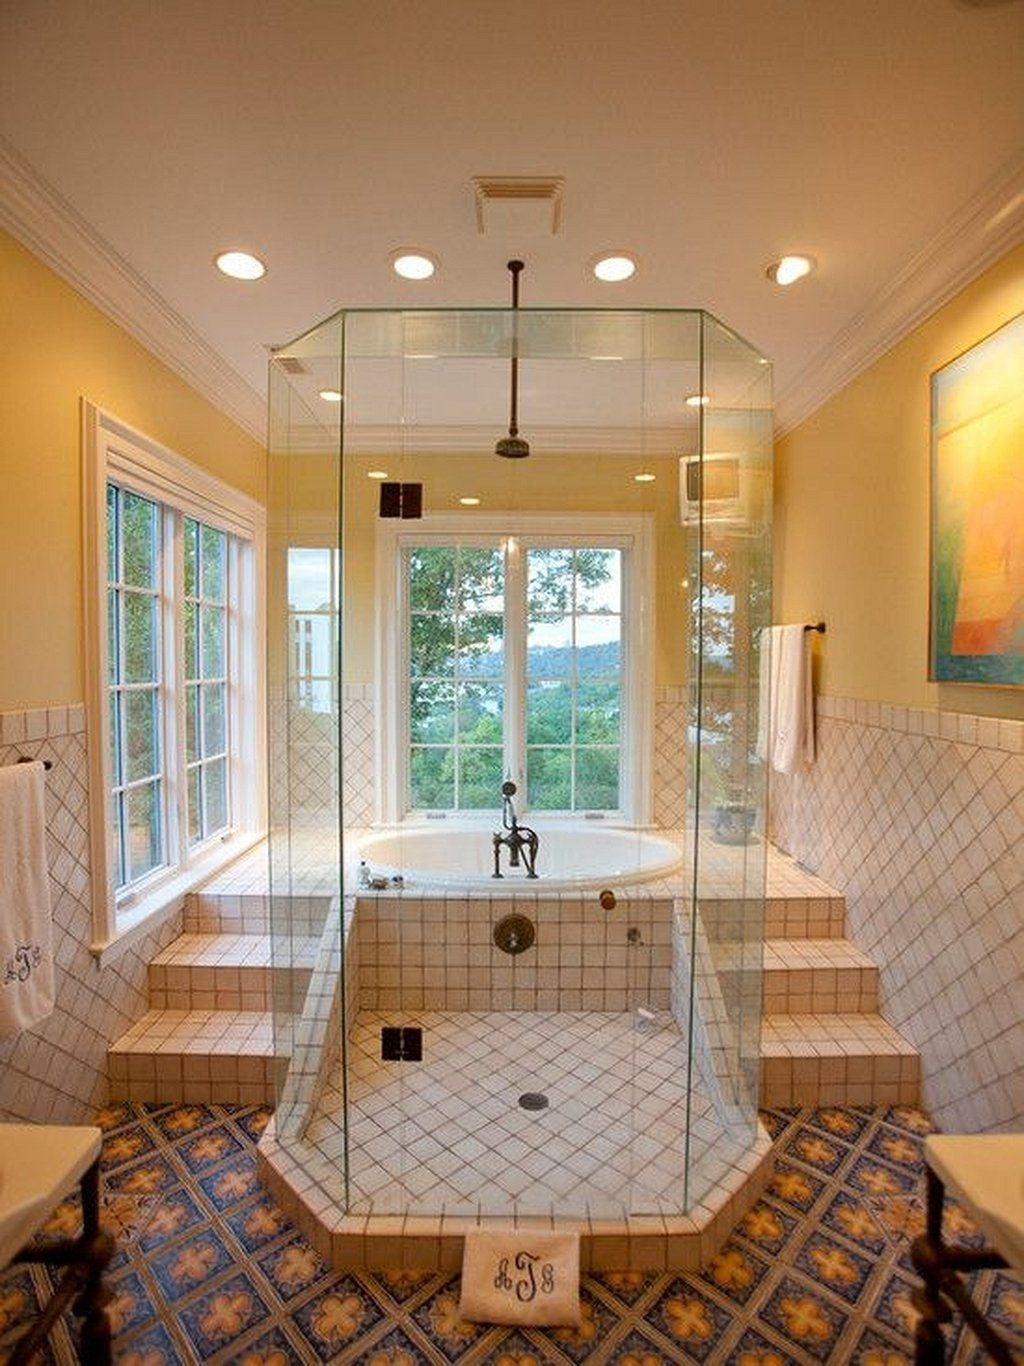 Captivating Bathtub Designs Ideas You Must See34